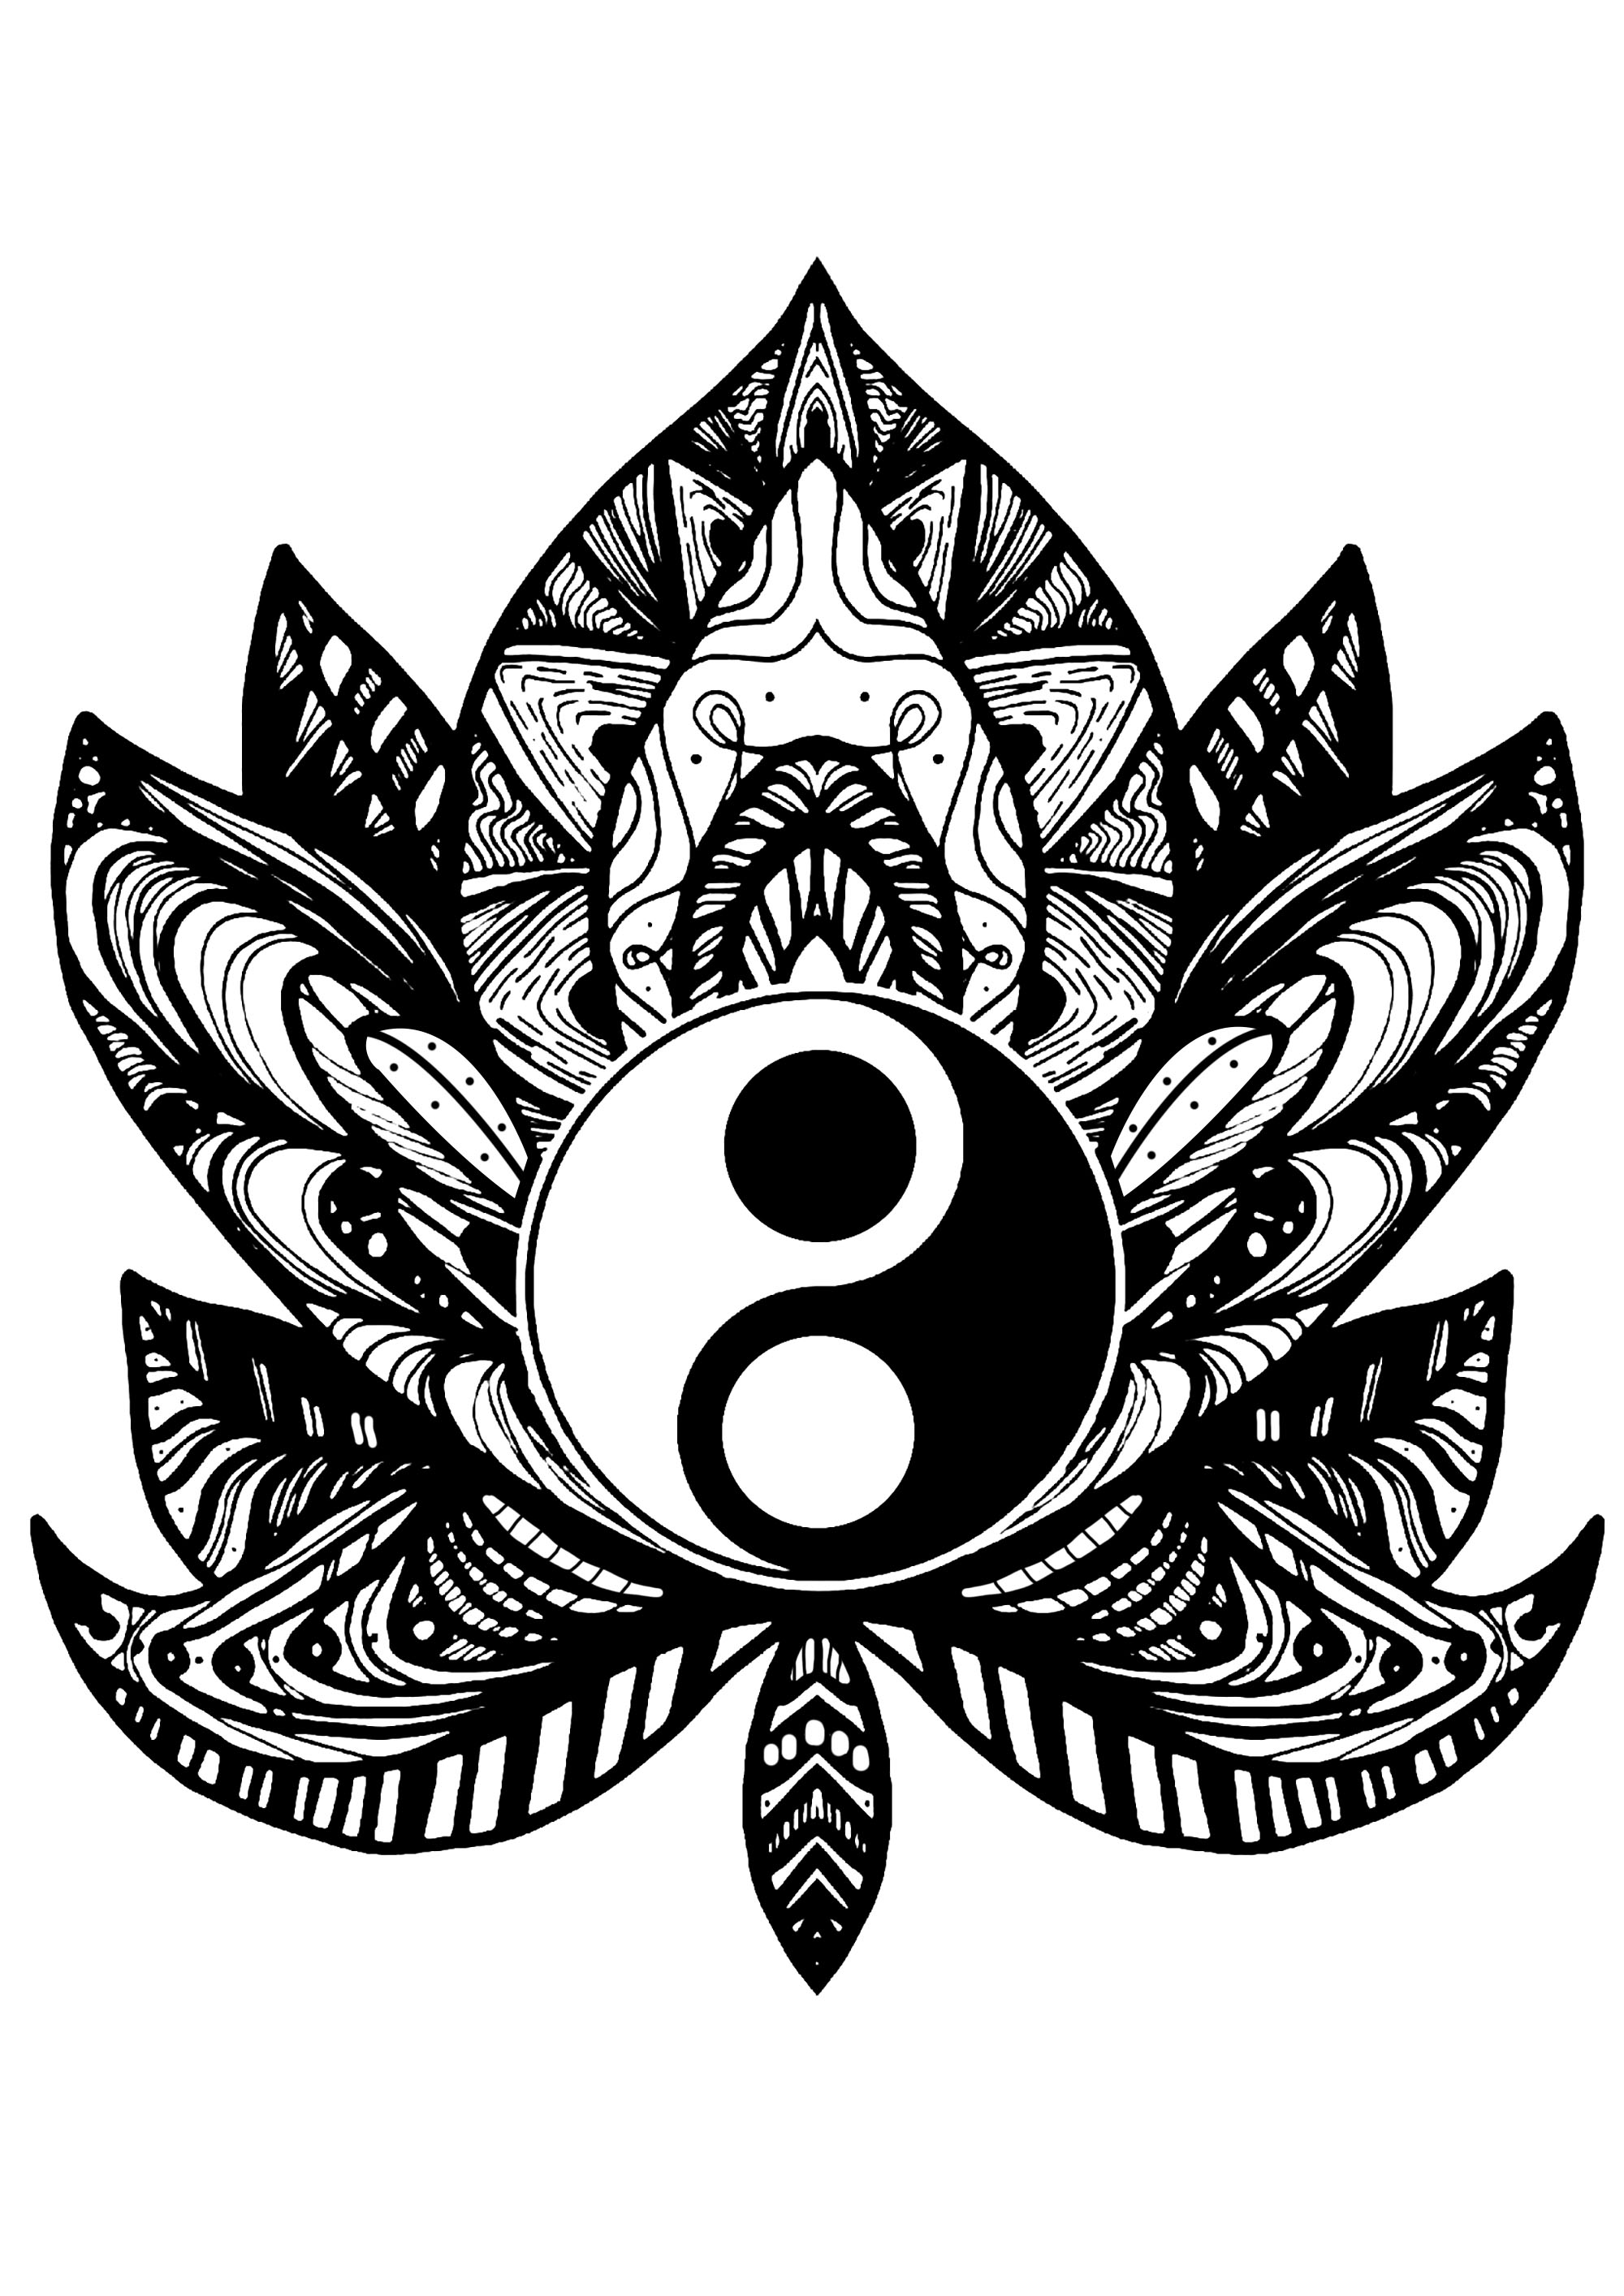 Relax yourself with this coloring page of a strange flower containing a Yin & Yang symbol in its middle